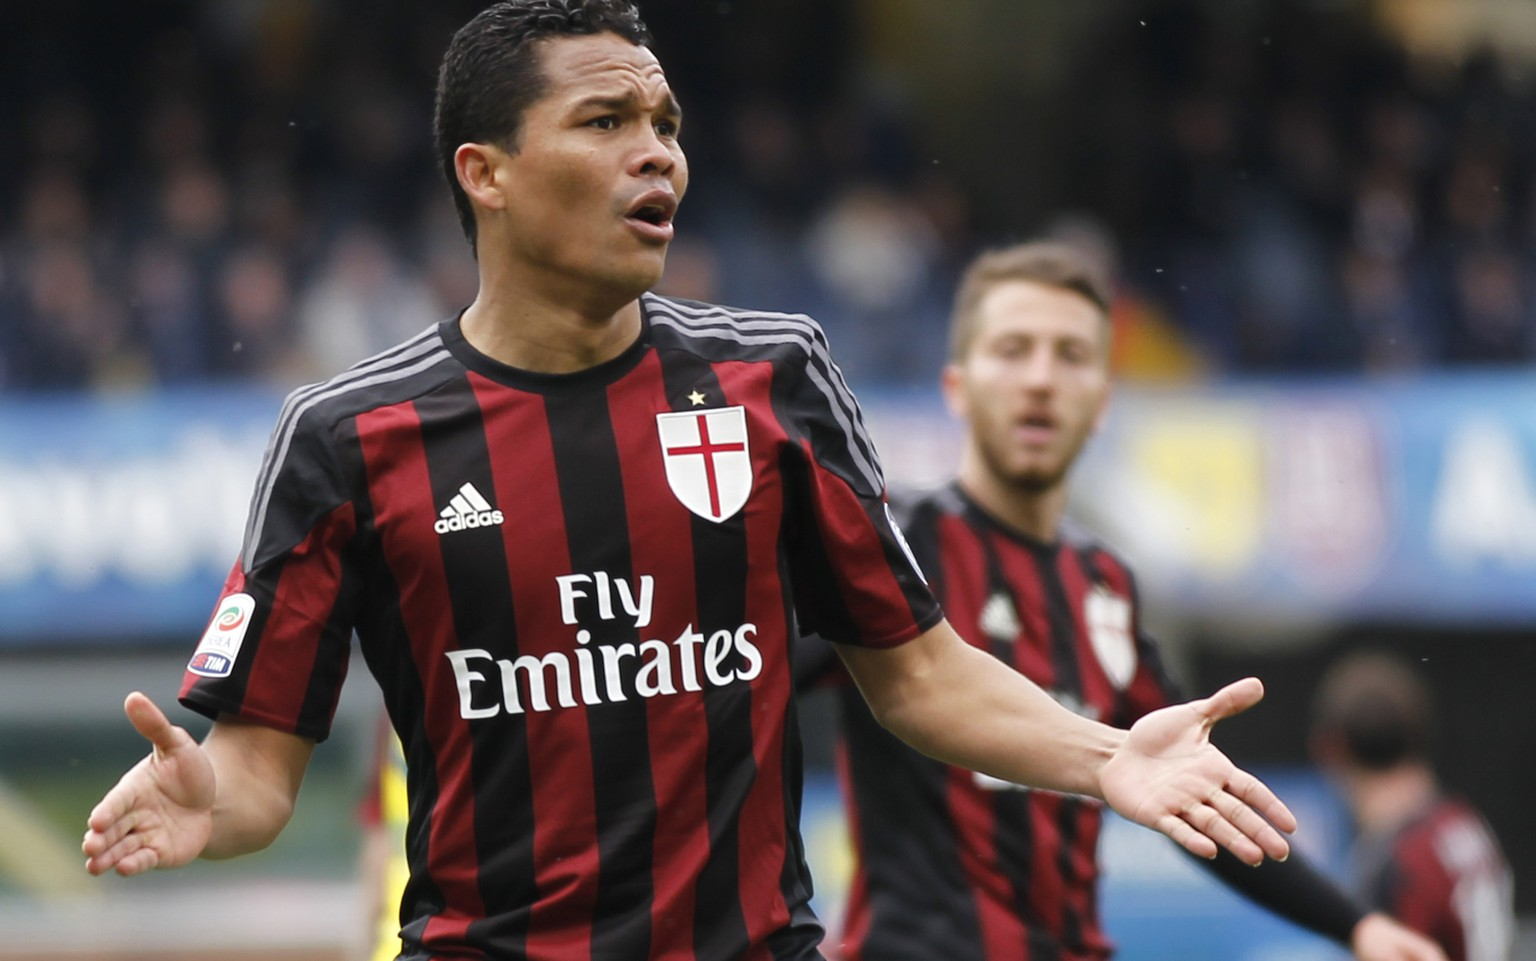 AC Milan's Carlos Bacca gestures during a Serie A soccer match against Chievo at Bentegodi stadium in Verona, Italy, Sunday, March 13, 2016. (AP Photo/Felice Calabro')